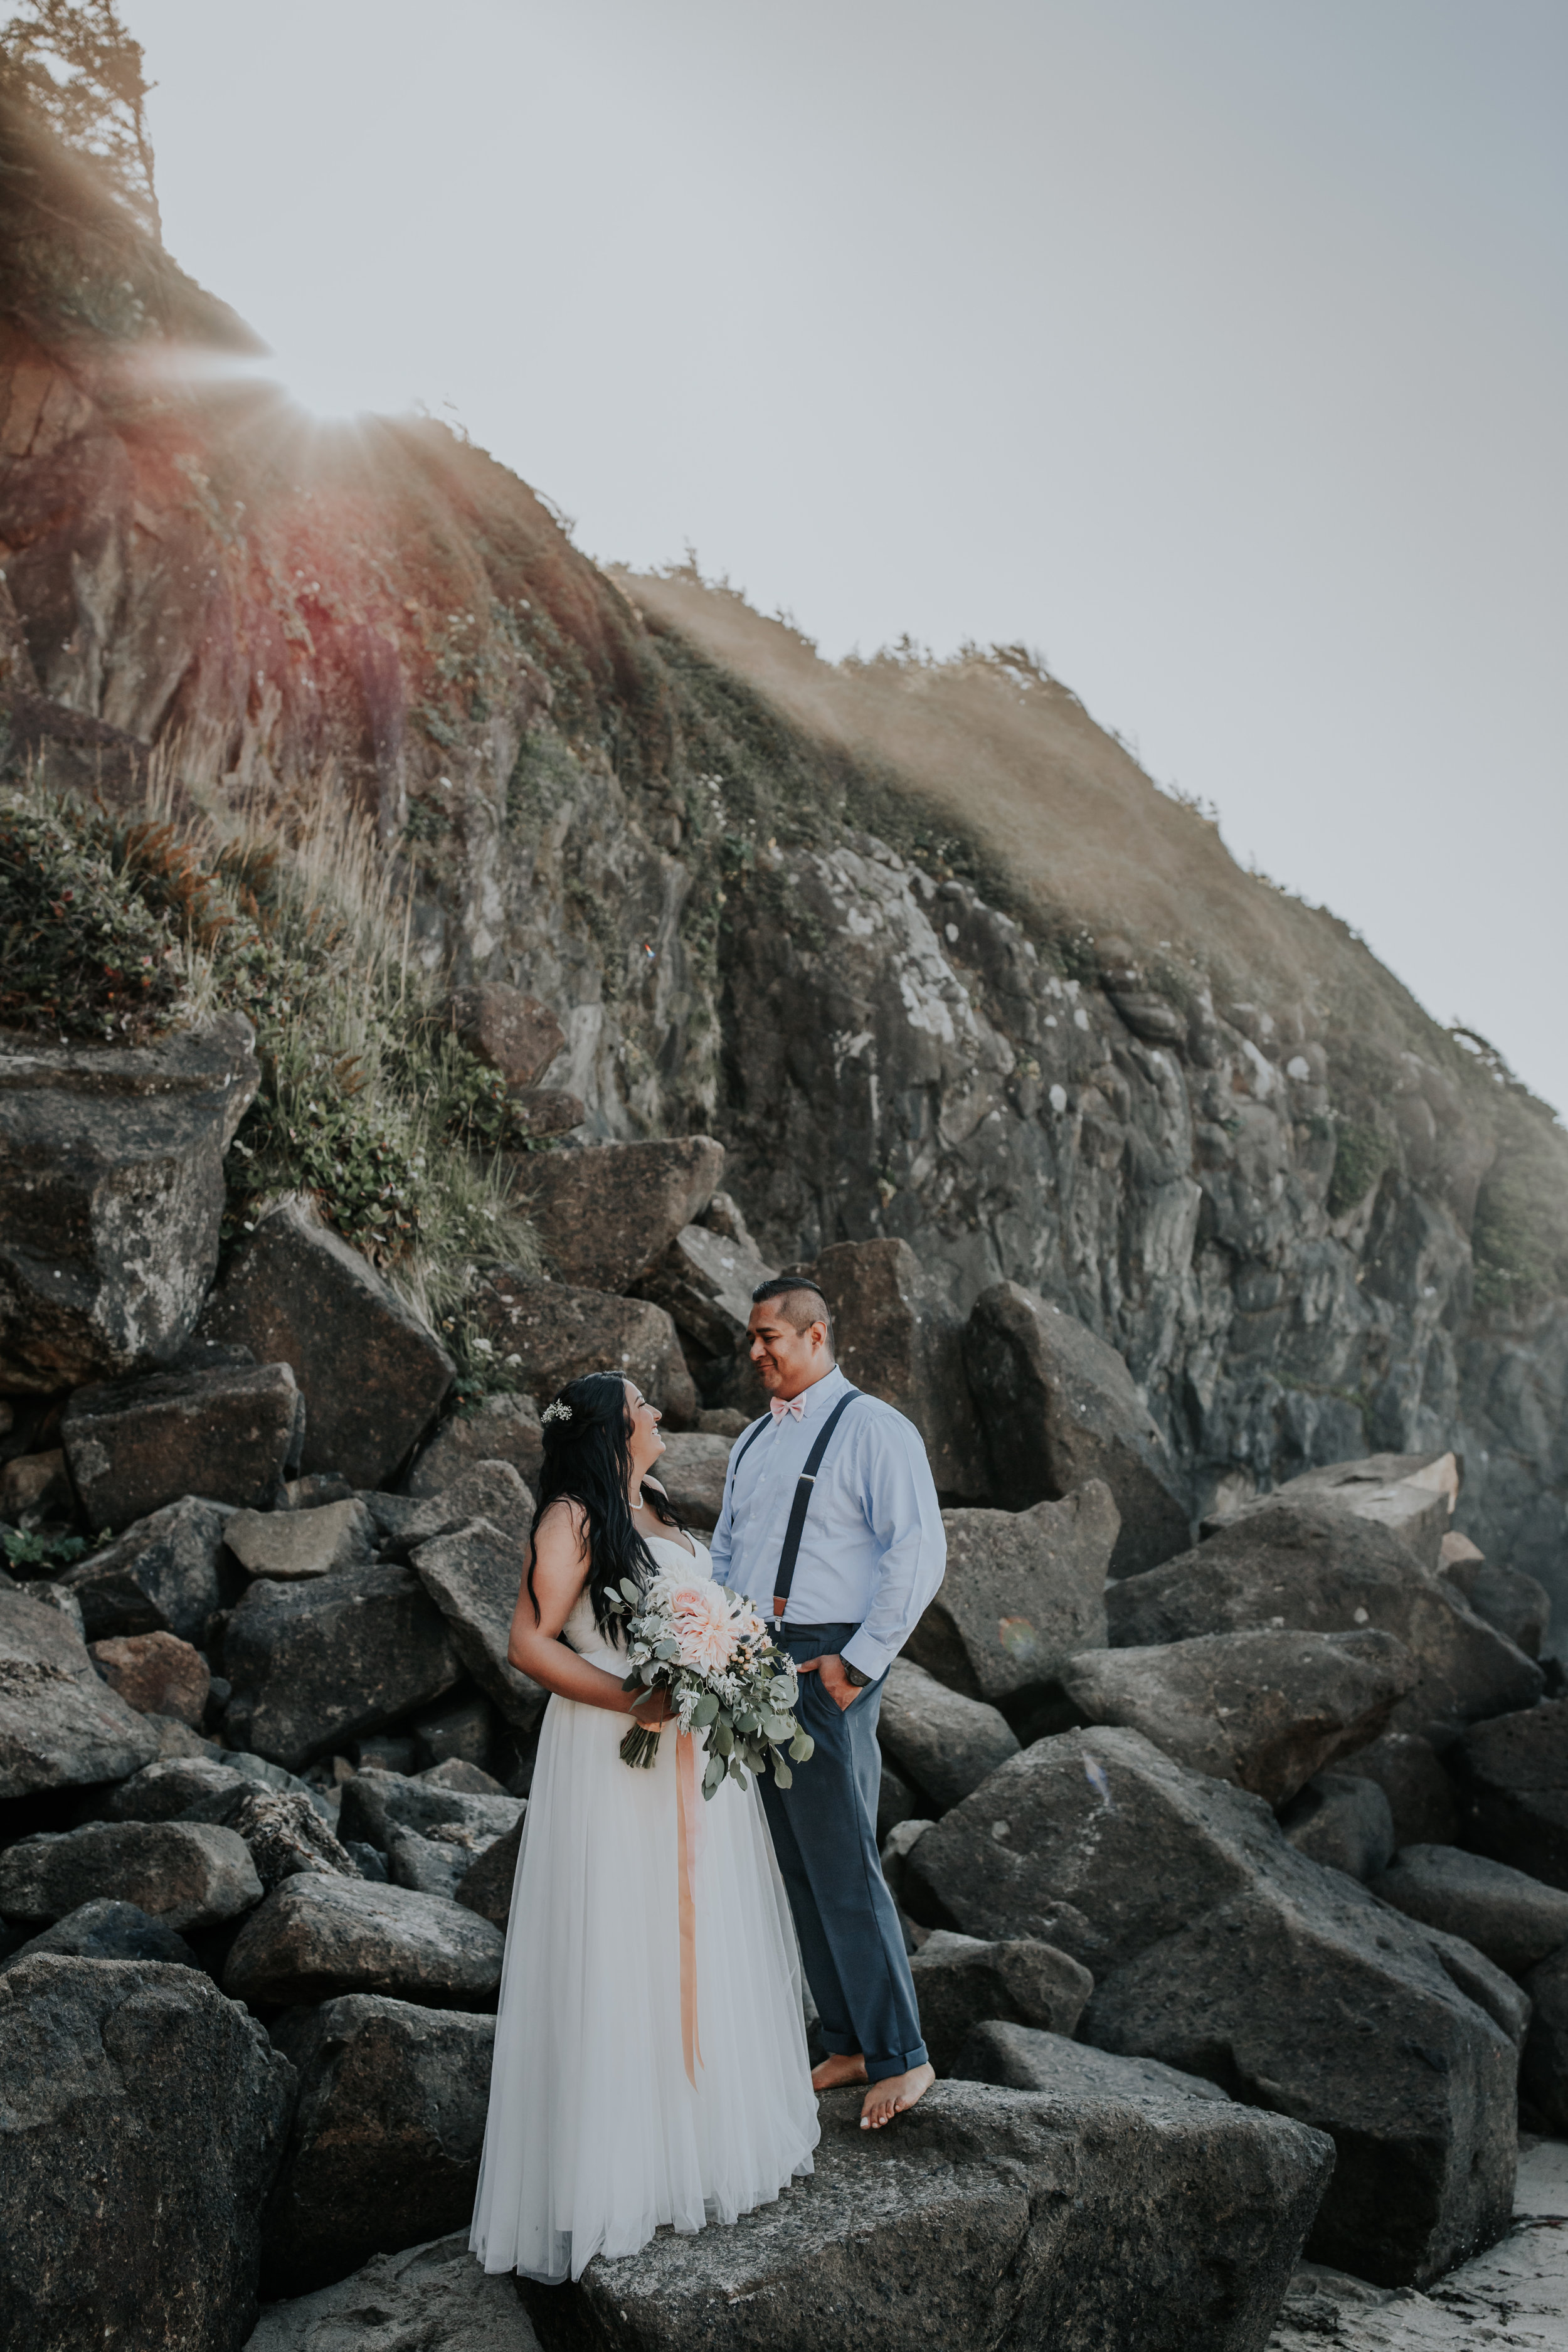 Oregon coast Wedding Photographer // Lincoln City, Oregon // Beach Wedding and Elopement